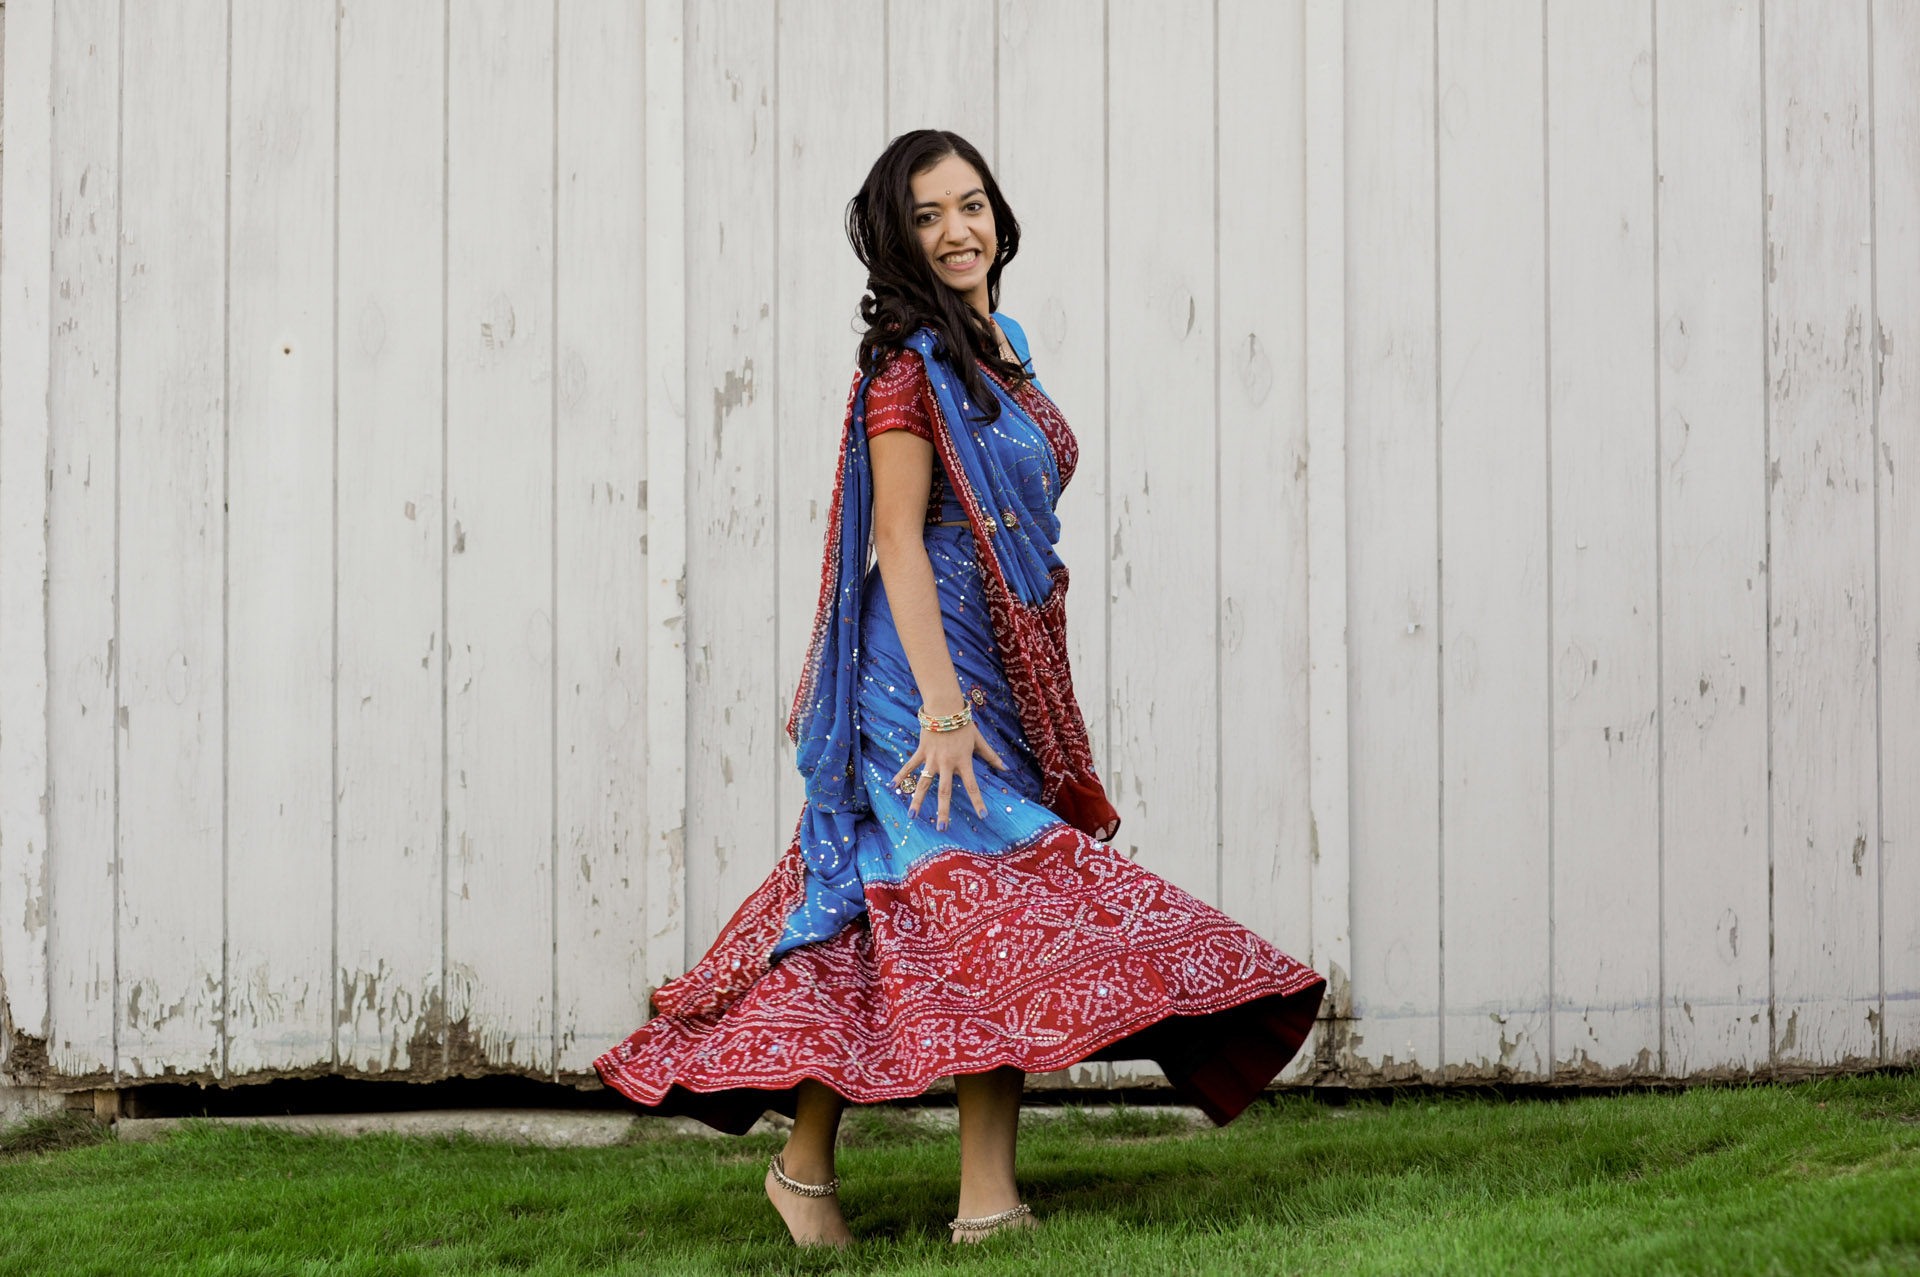 Troy, Michigan senior photographer's photo of a high school senior of her Indian dancing for her senior pictures in Troy, Michigan.